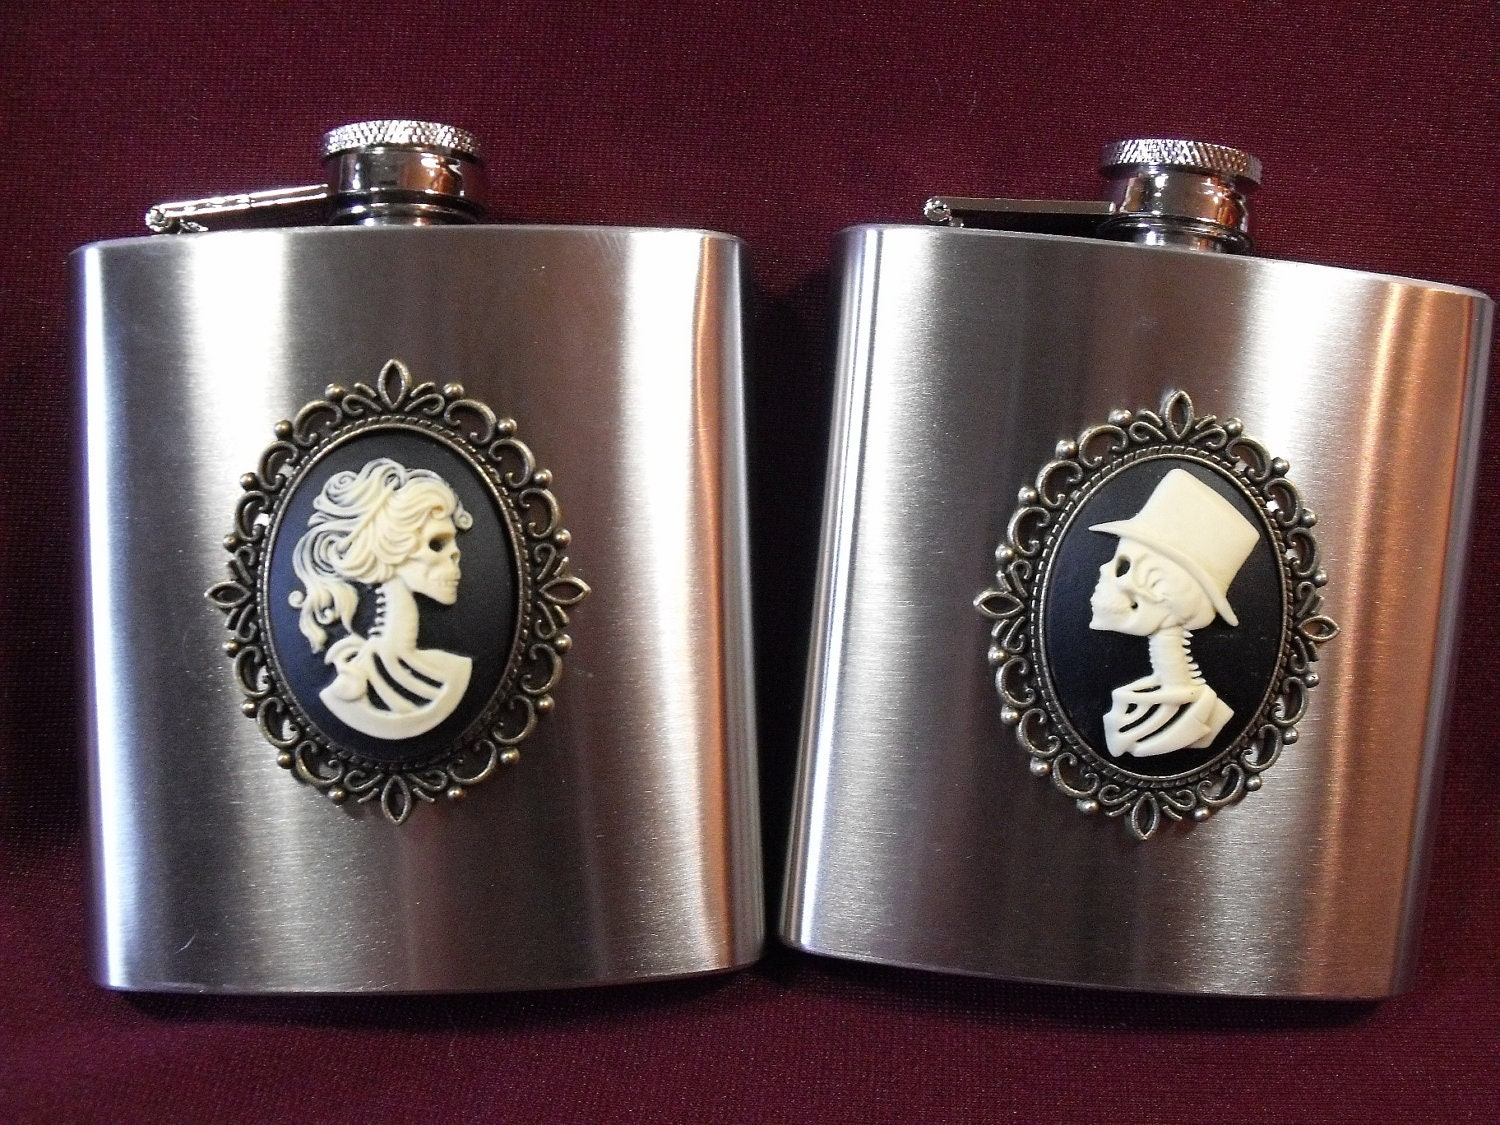 Unusual Wedding Gifts For Bride And Groom: Flask Gothic Bride And Groom Cameos Wedding Gift Mens